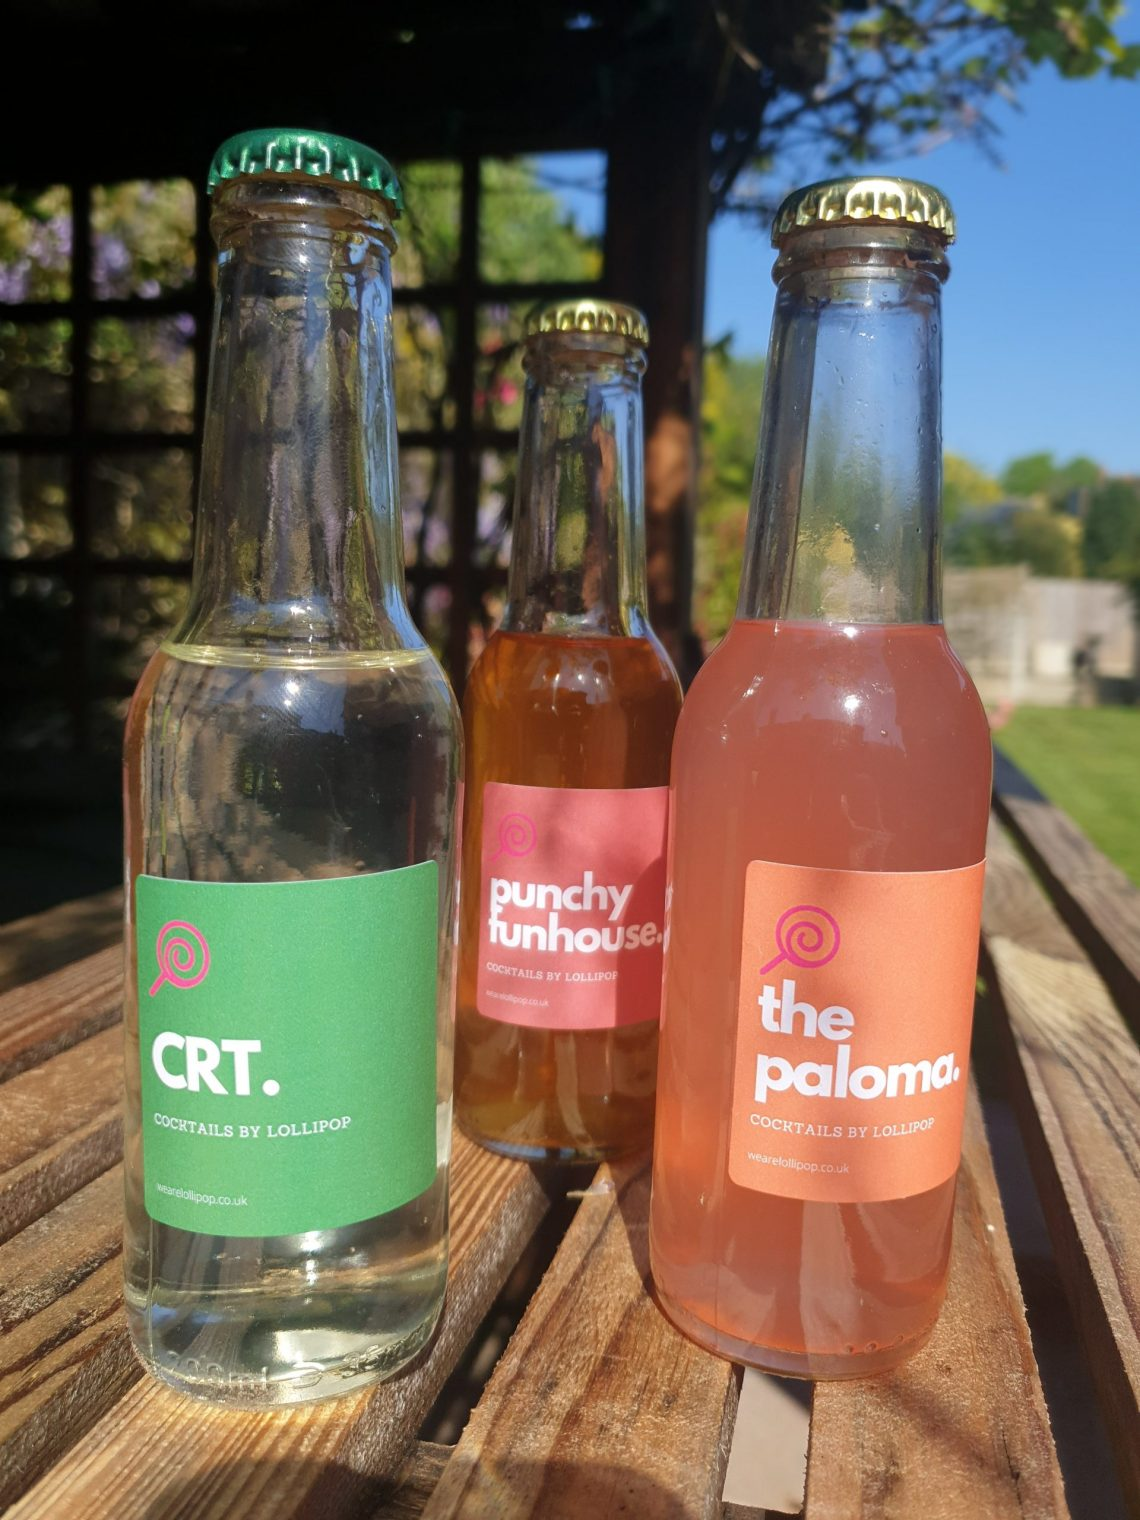 3 bottles of cocktails from Lollipop; CRT, Punchy Funhouse and The Paloma.